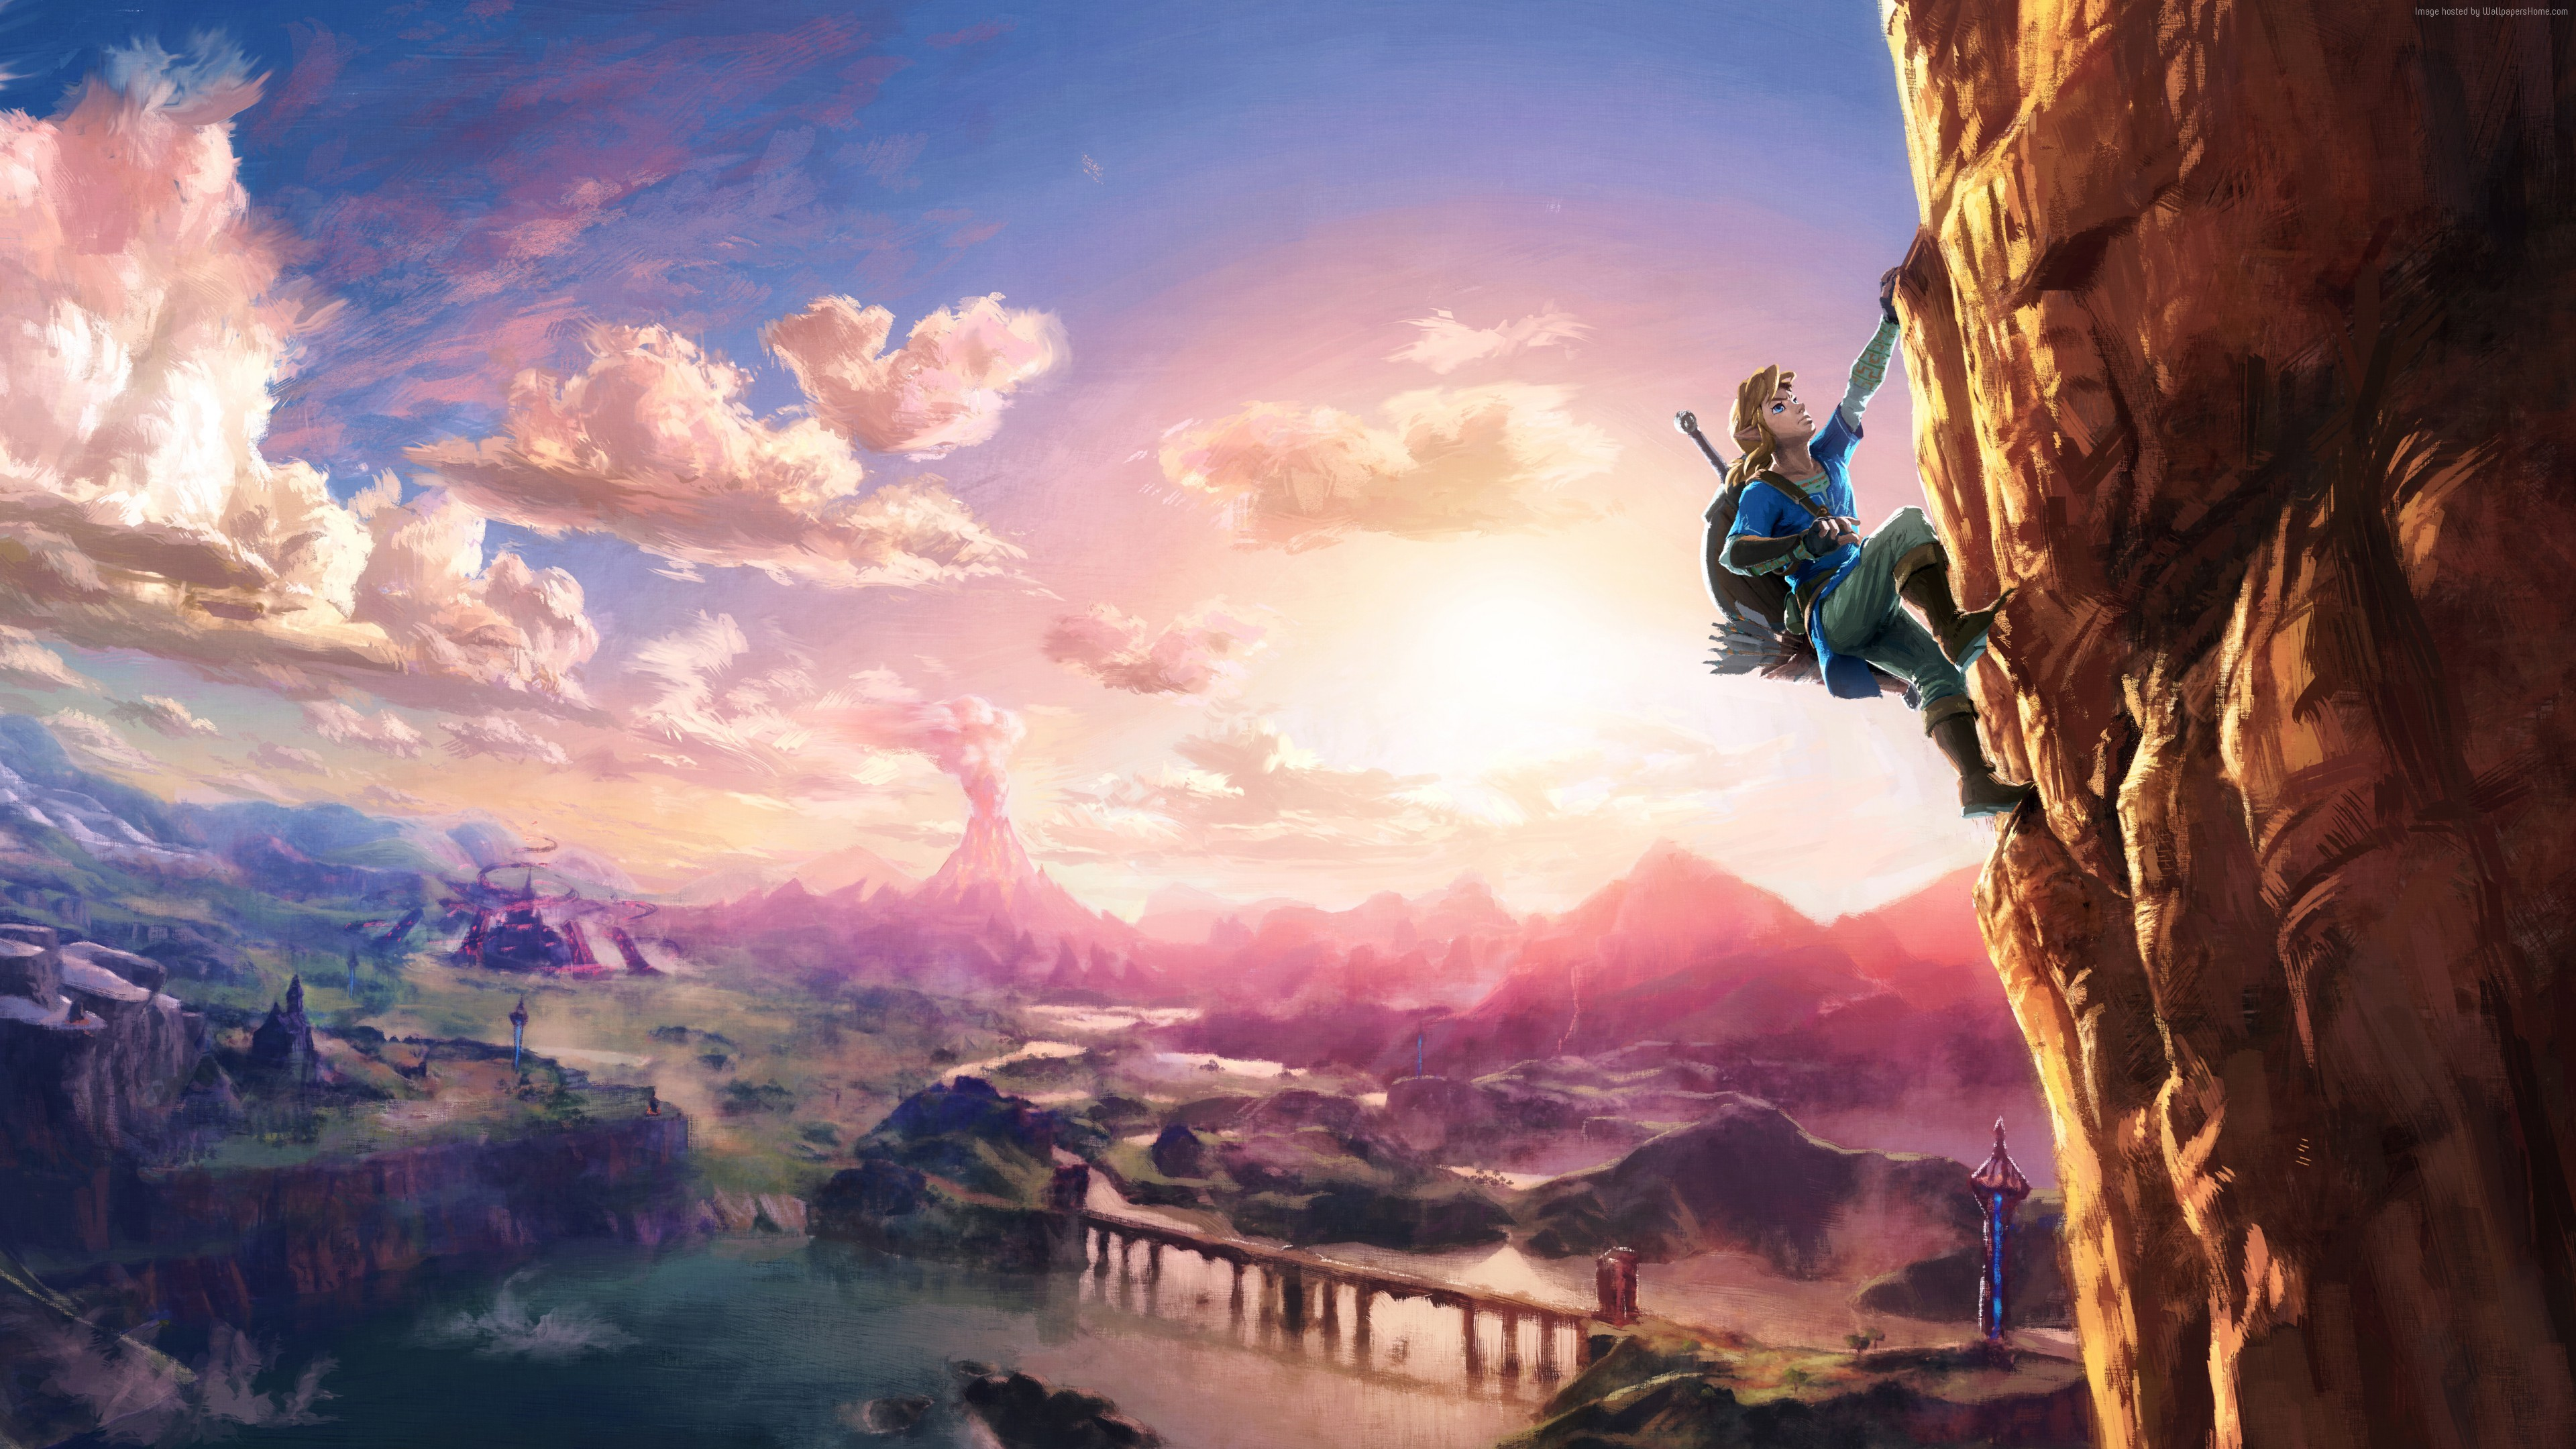 The Legend Of Zelda Breath Of The Wild Fondo De Pantalla 4k